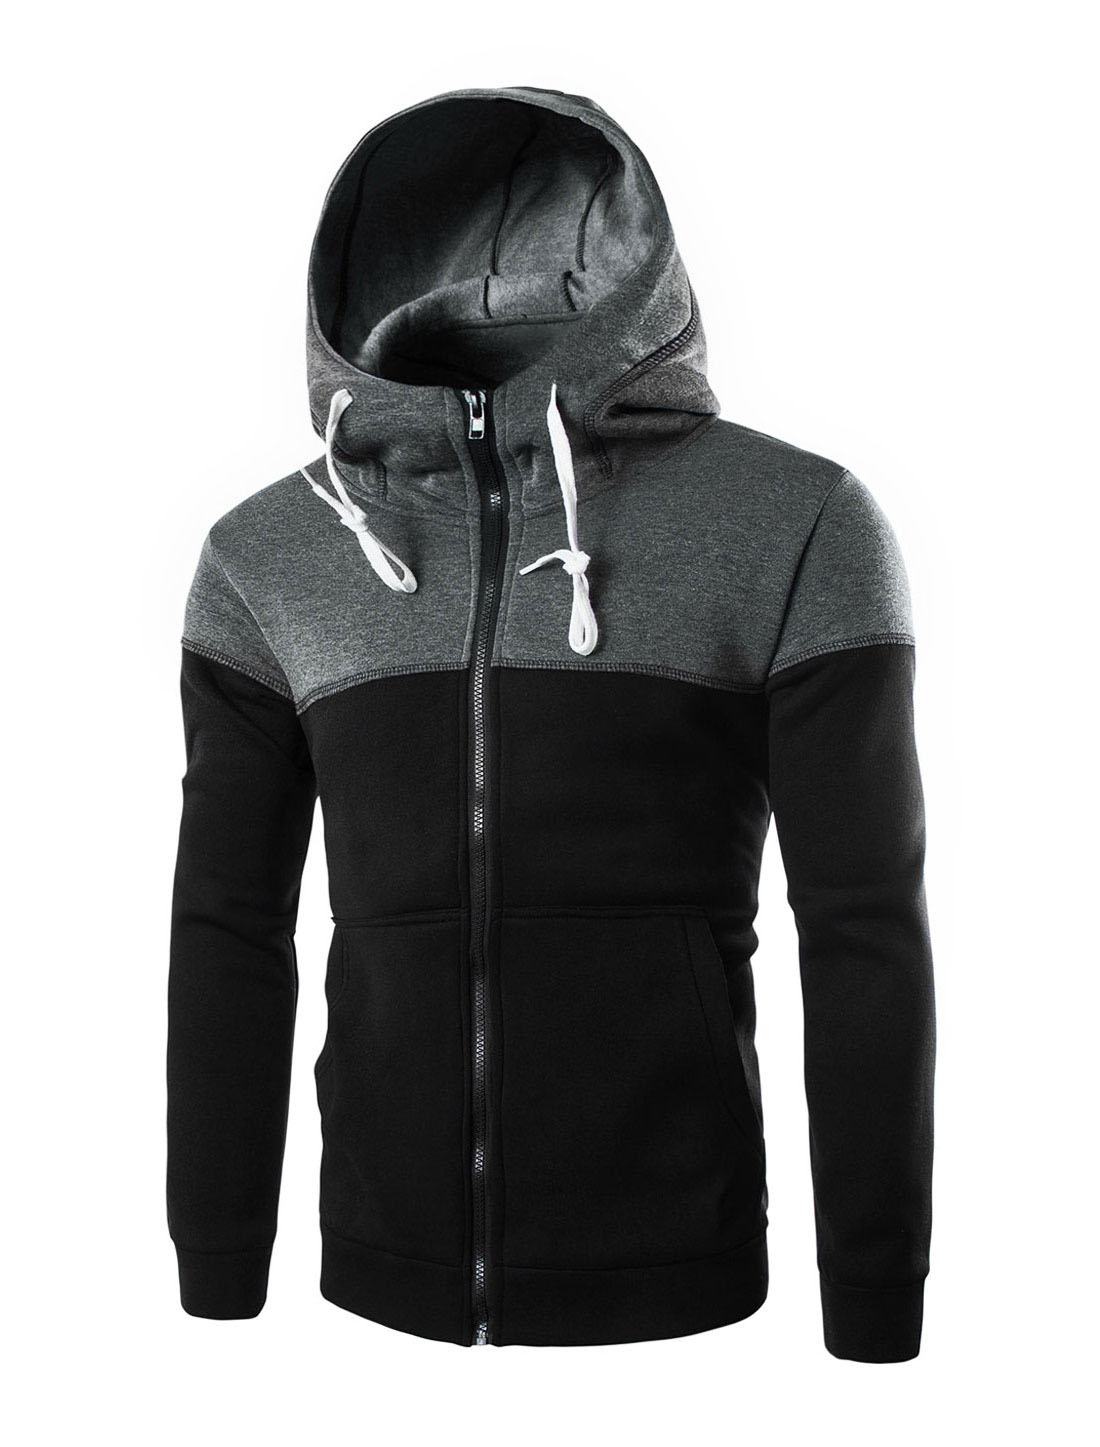 Men Color Block Kangaroo Pocket Zipper Hoodie Jacket Black S